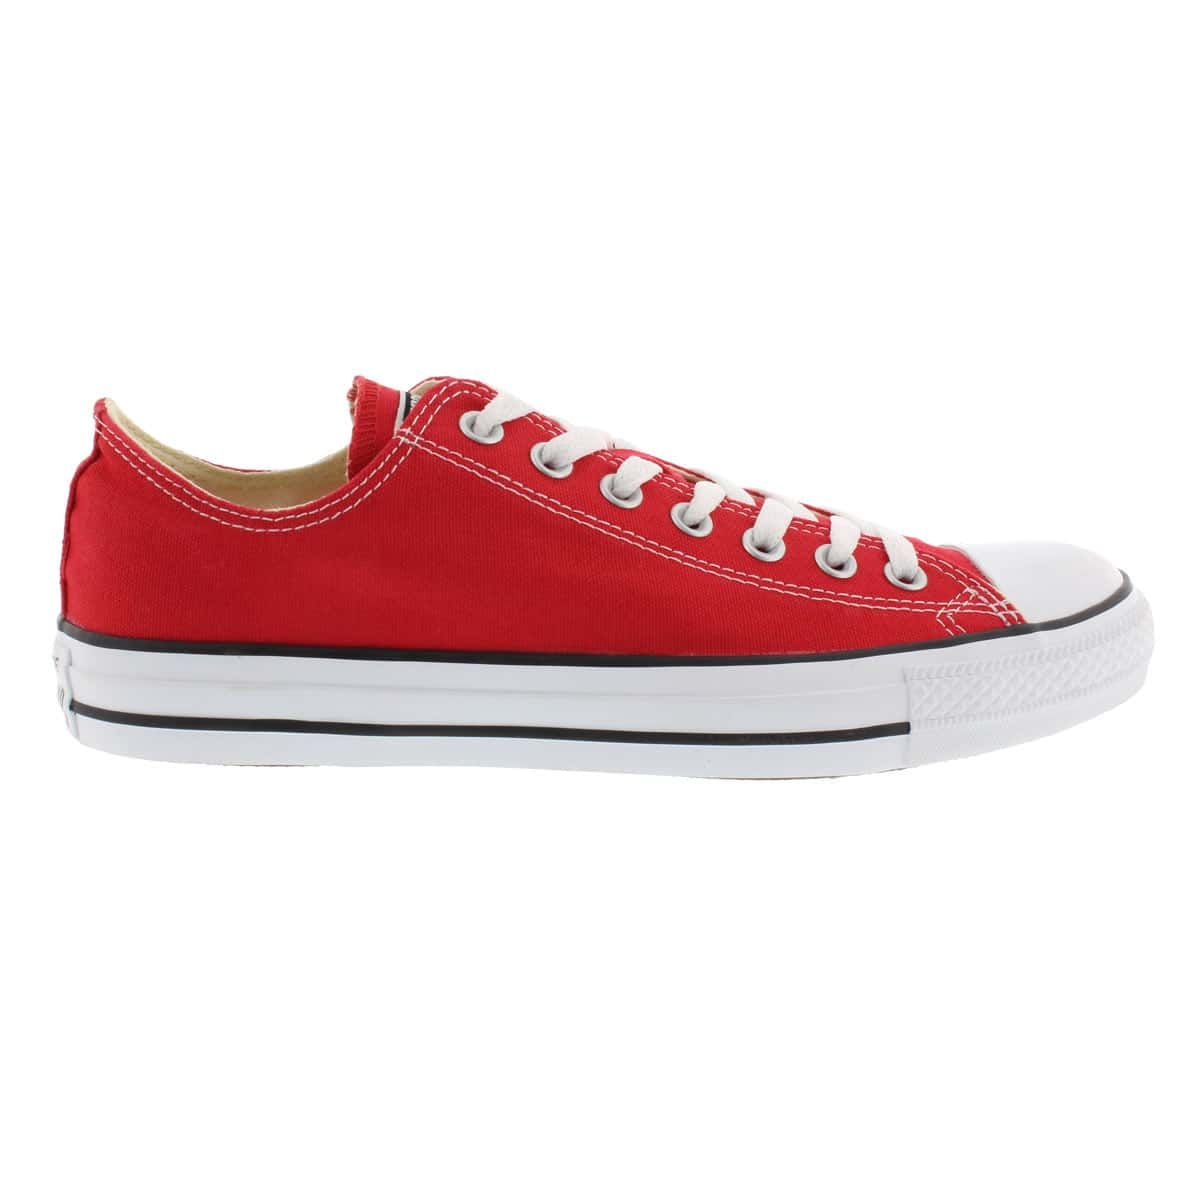 d7a578b162bd Converse Women s CHUCK TAYLOR CORE OX red sneakers M9696